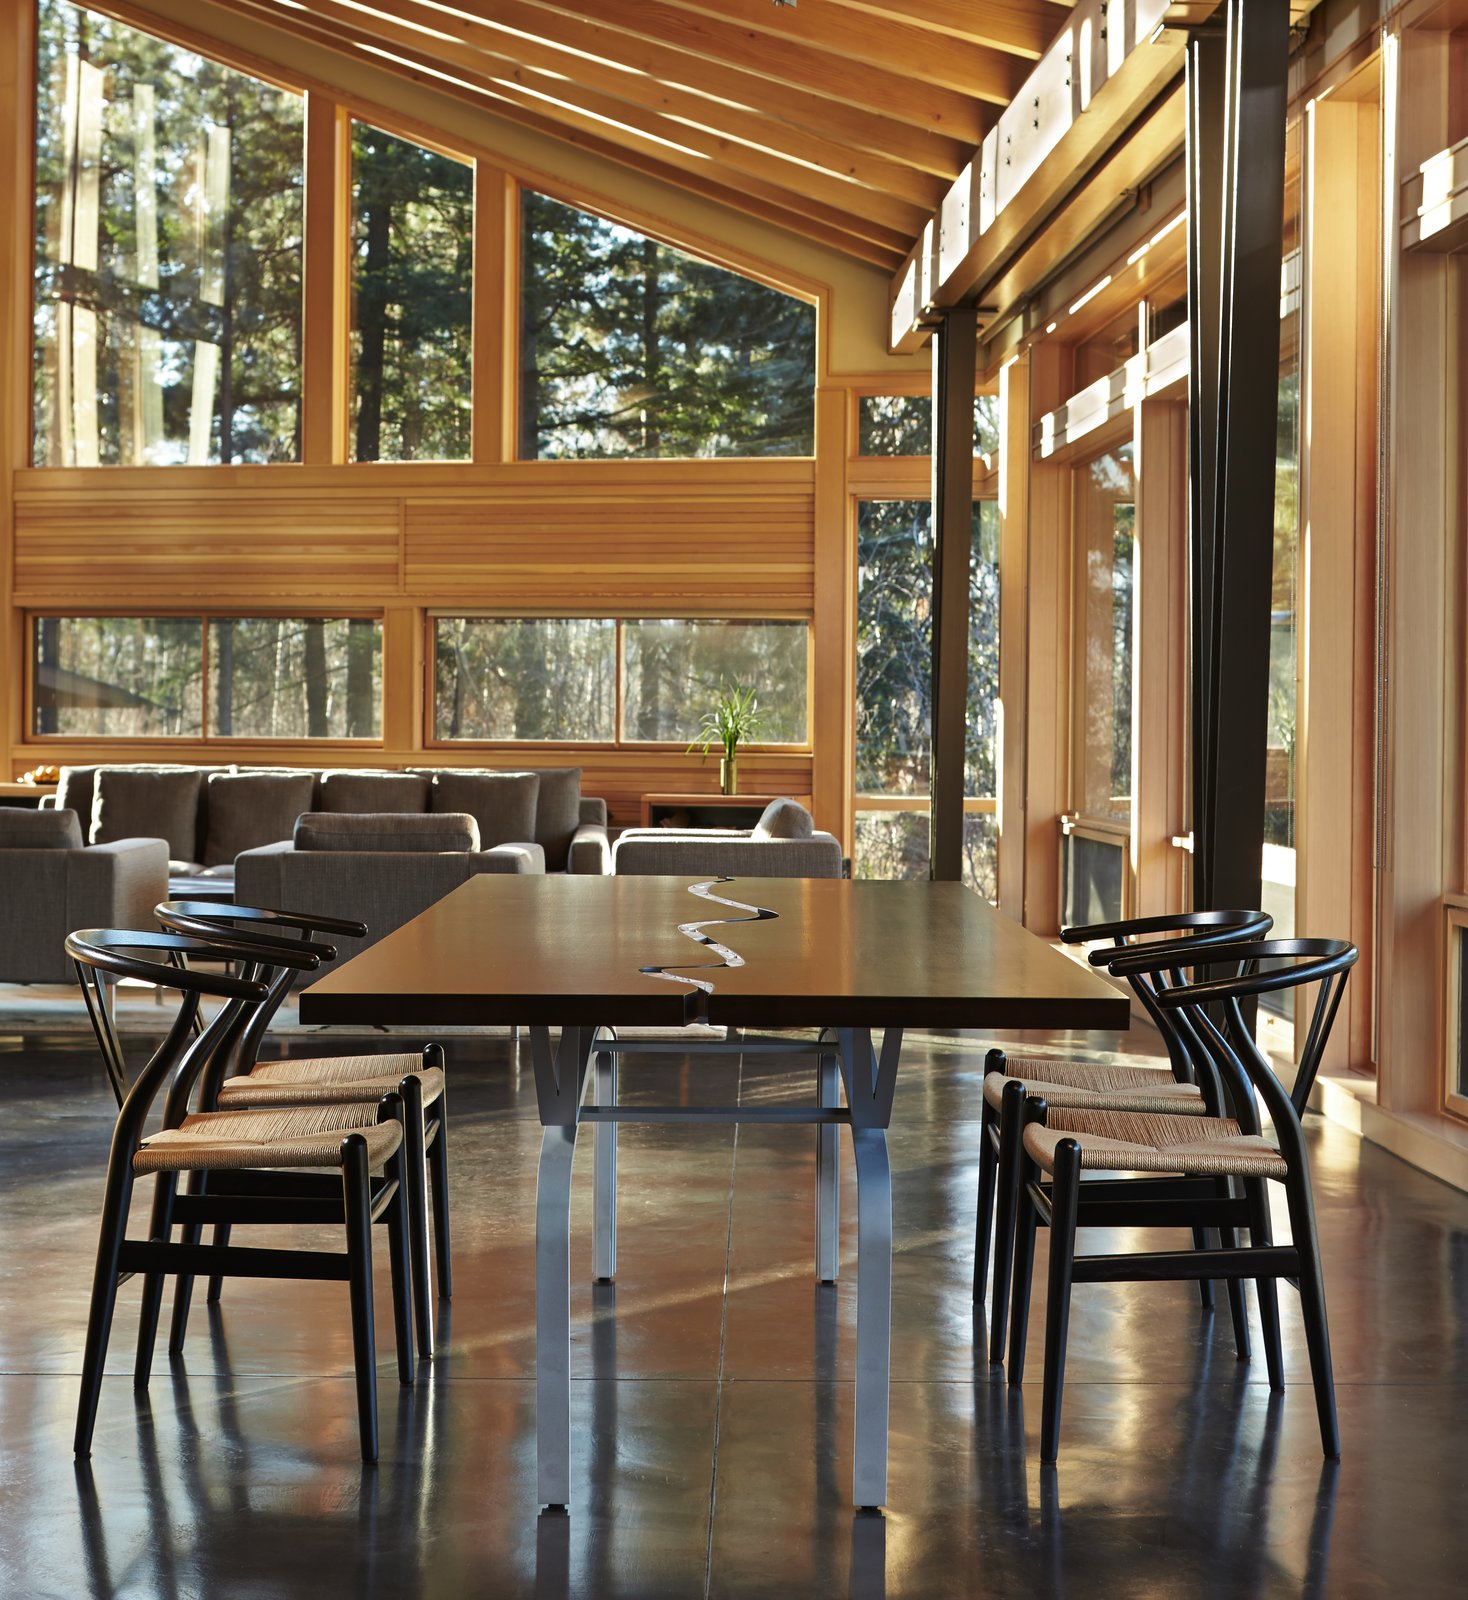 Dining Room, Chair, Table, Ceiling Lighting, Standard Layout Fireplace, and Concrete Floor Dining space with custom walnut and aluminum table  Quantum Signature Series Windows from Mazama House